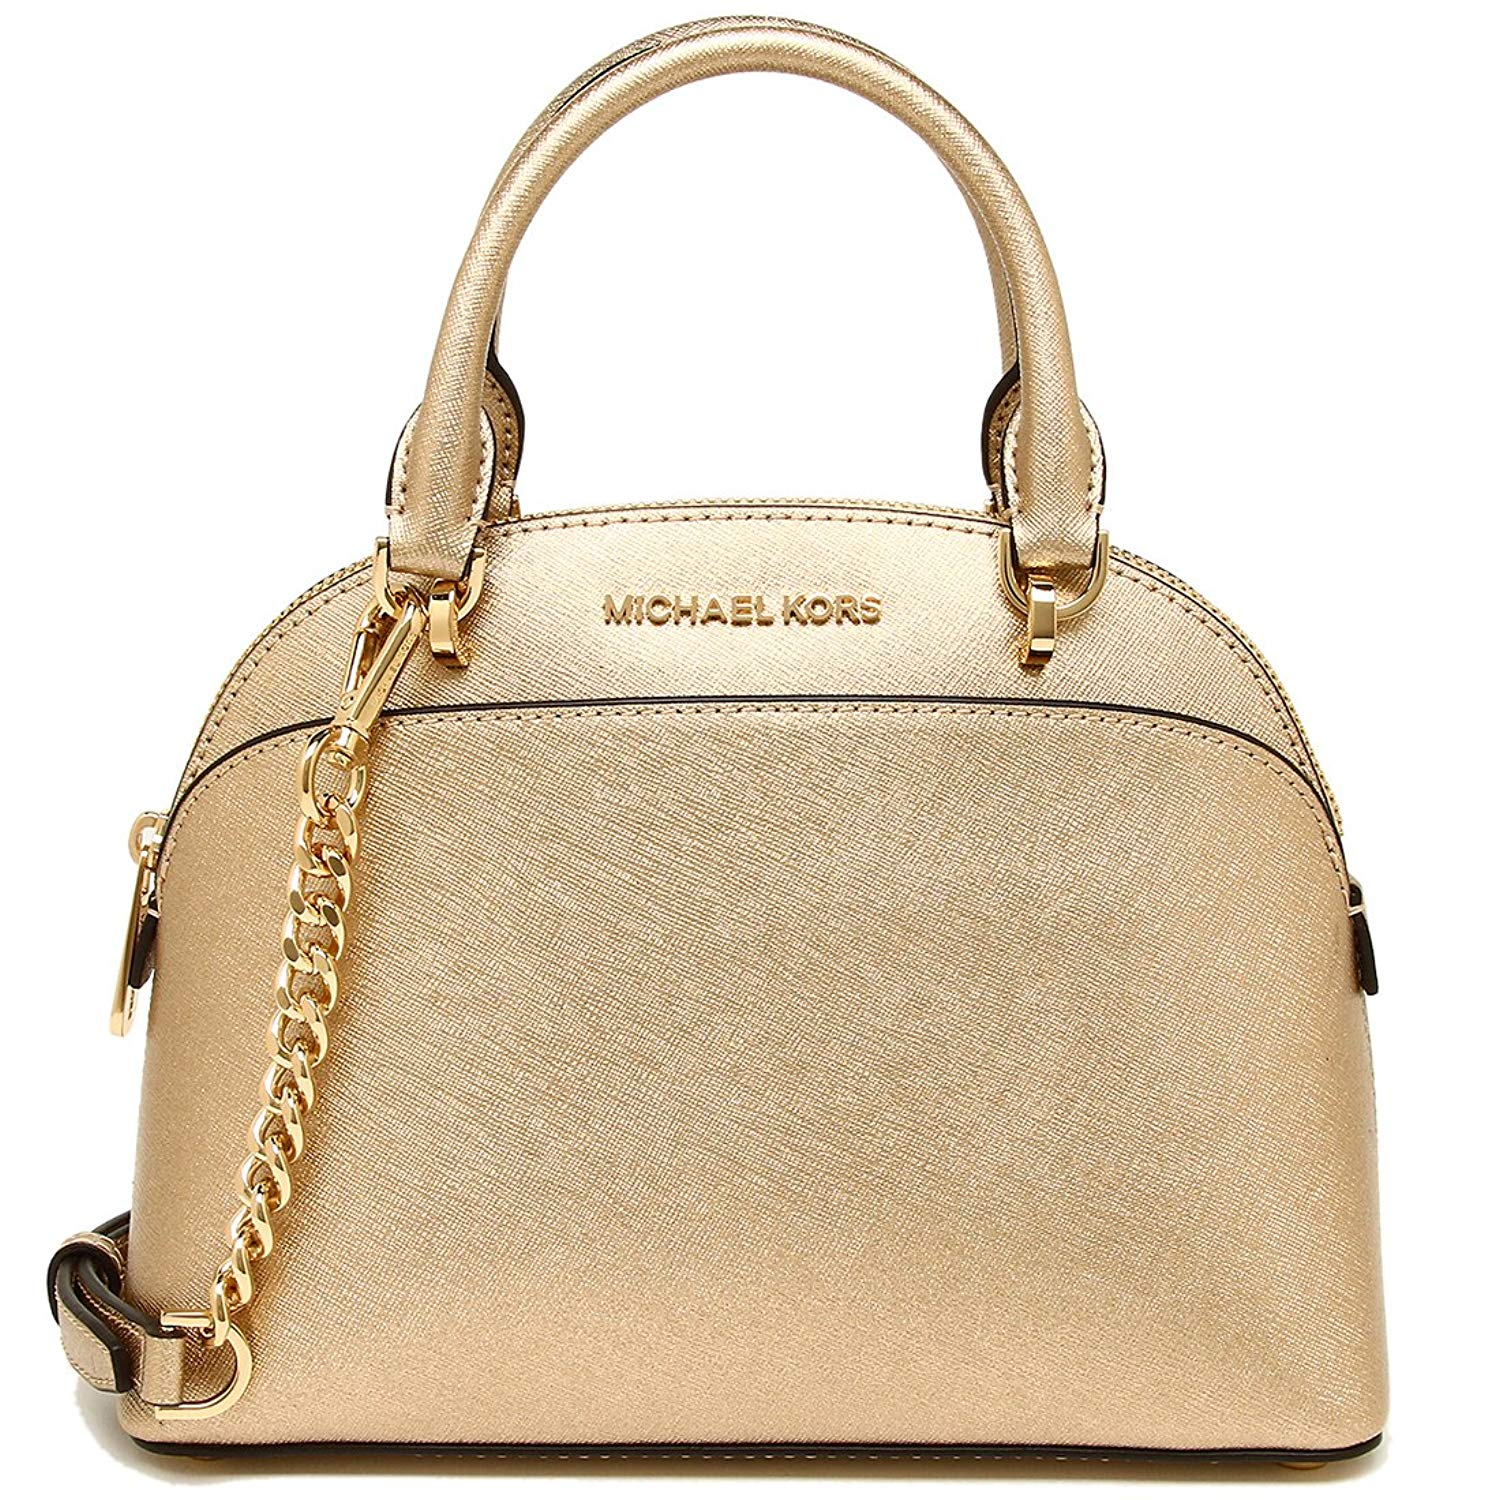 Michael Kors Emmy Small Dome Leather Satchel Crossbody Bag Gold # 35H7MY3S1M